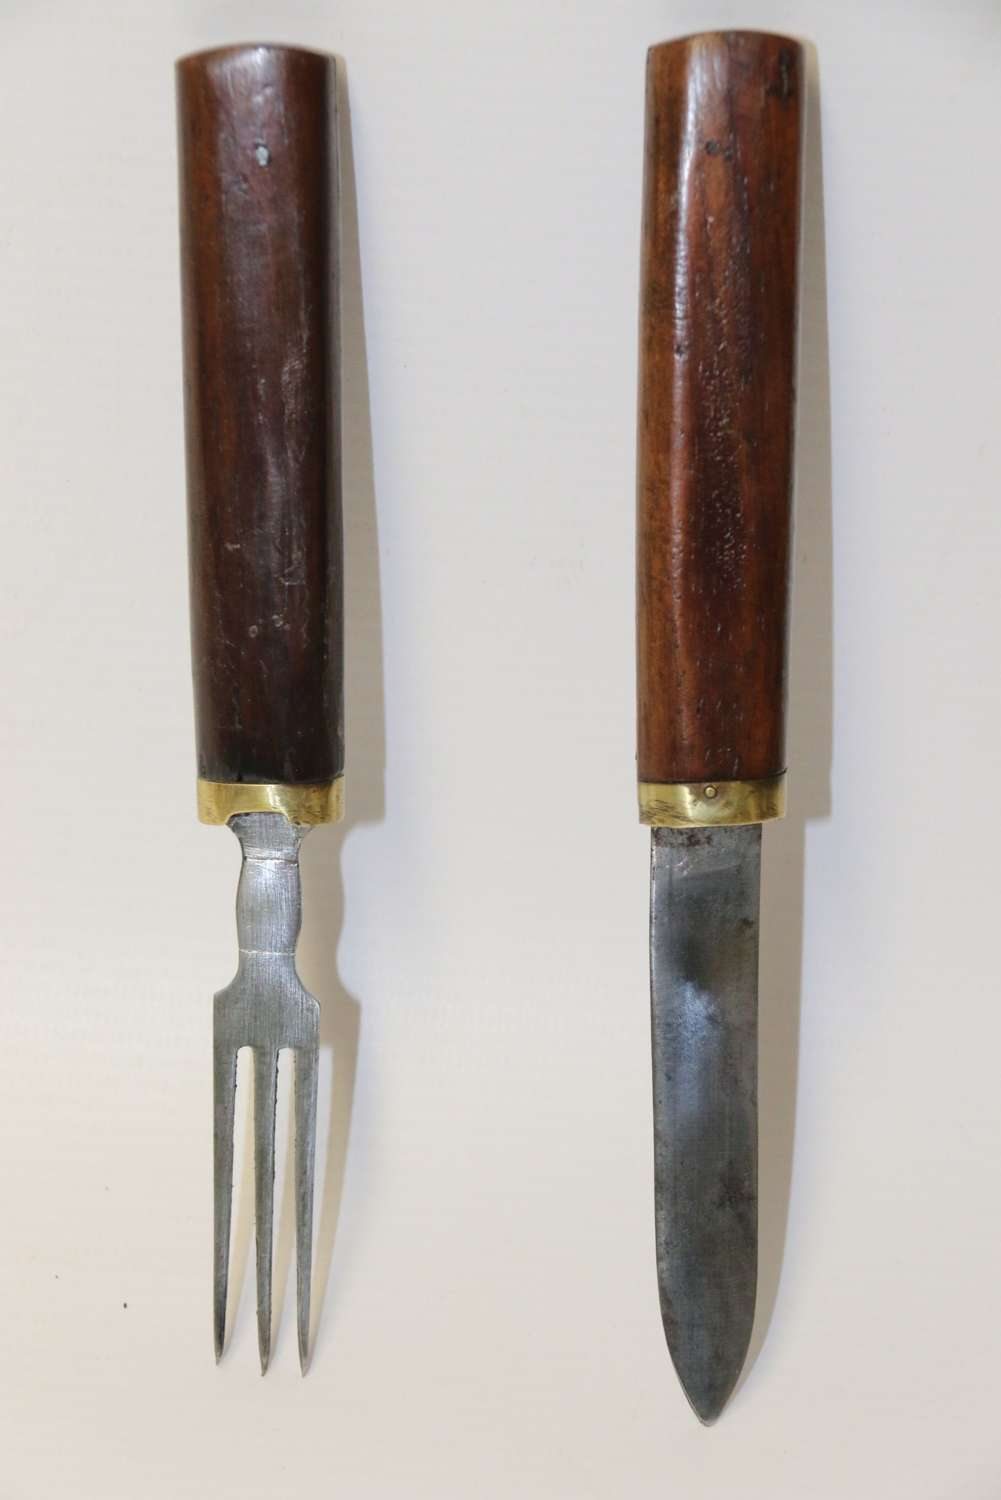 An Early 19th C English Military Campaign Knife And Fork Set